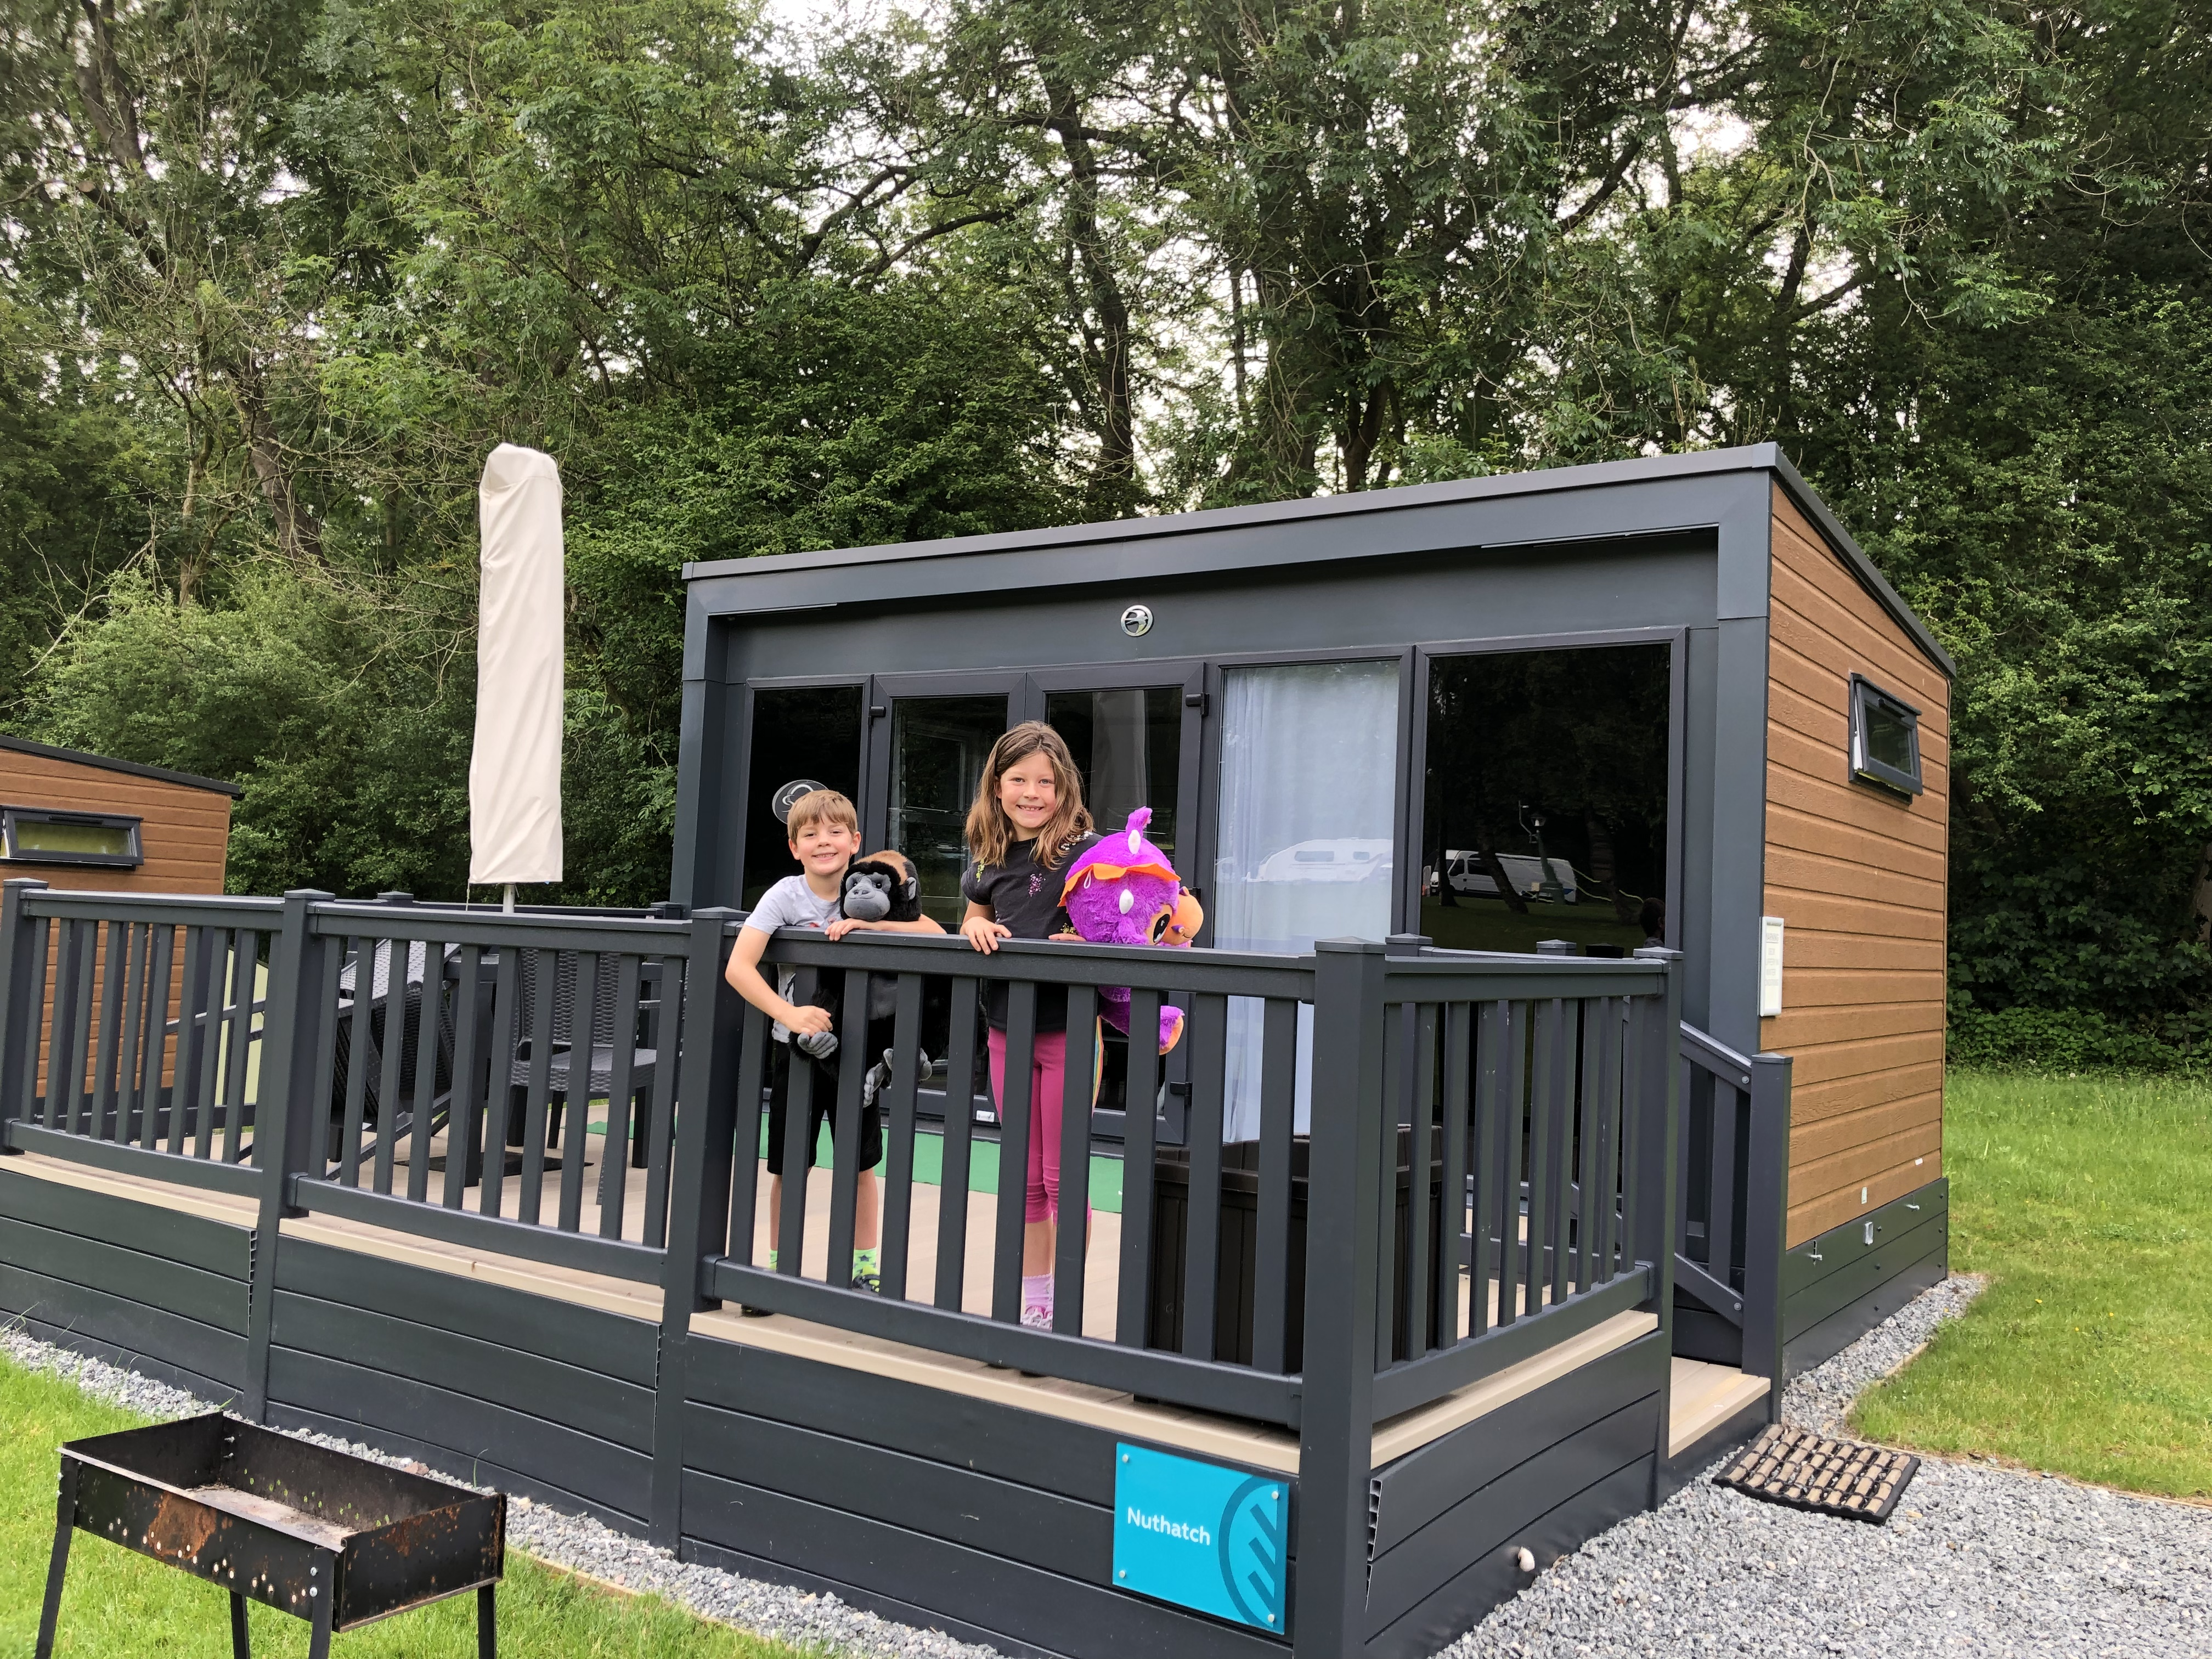 My two little ones standing on the balcony of the Experience Freedom glamping pod at Alderstead Heath